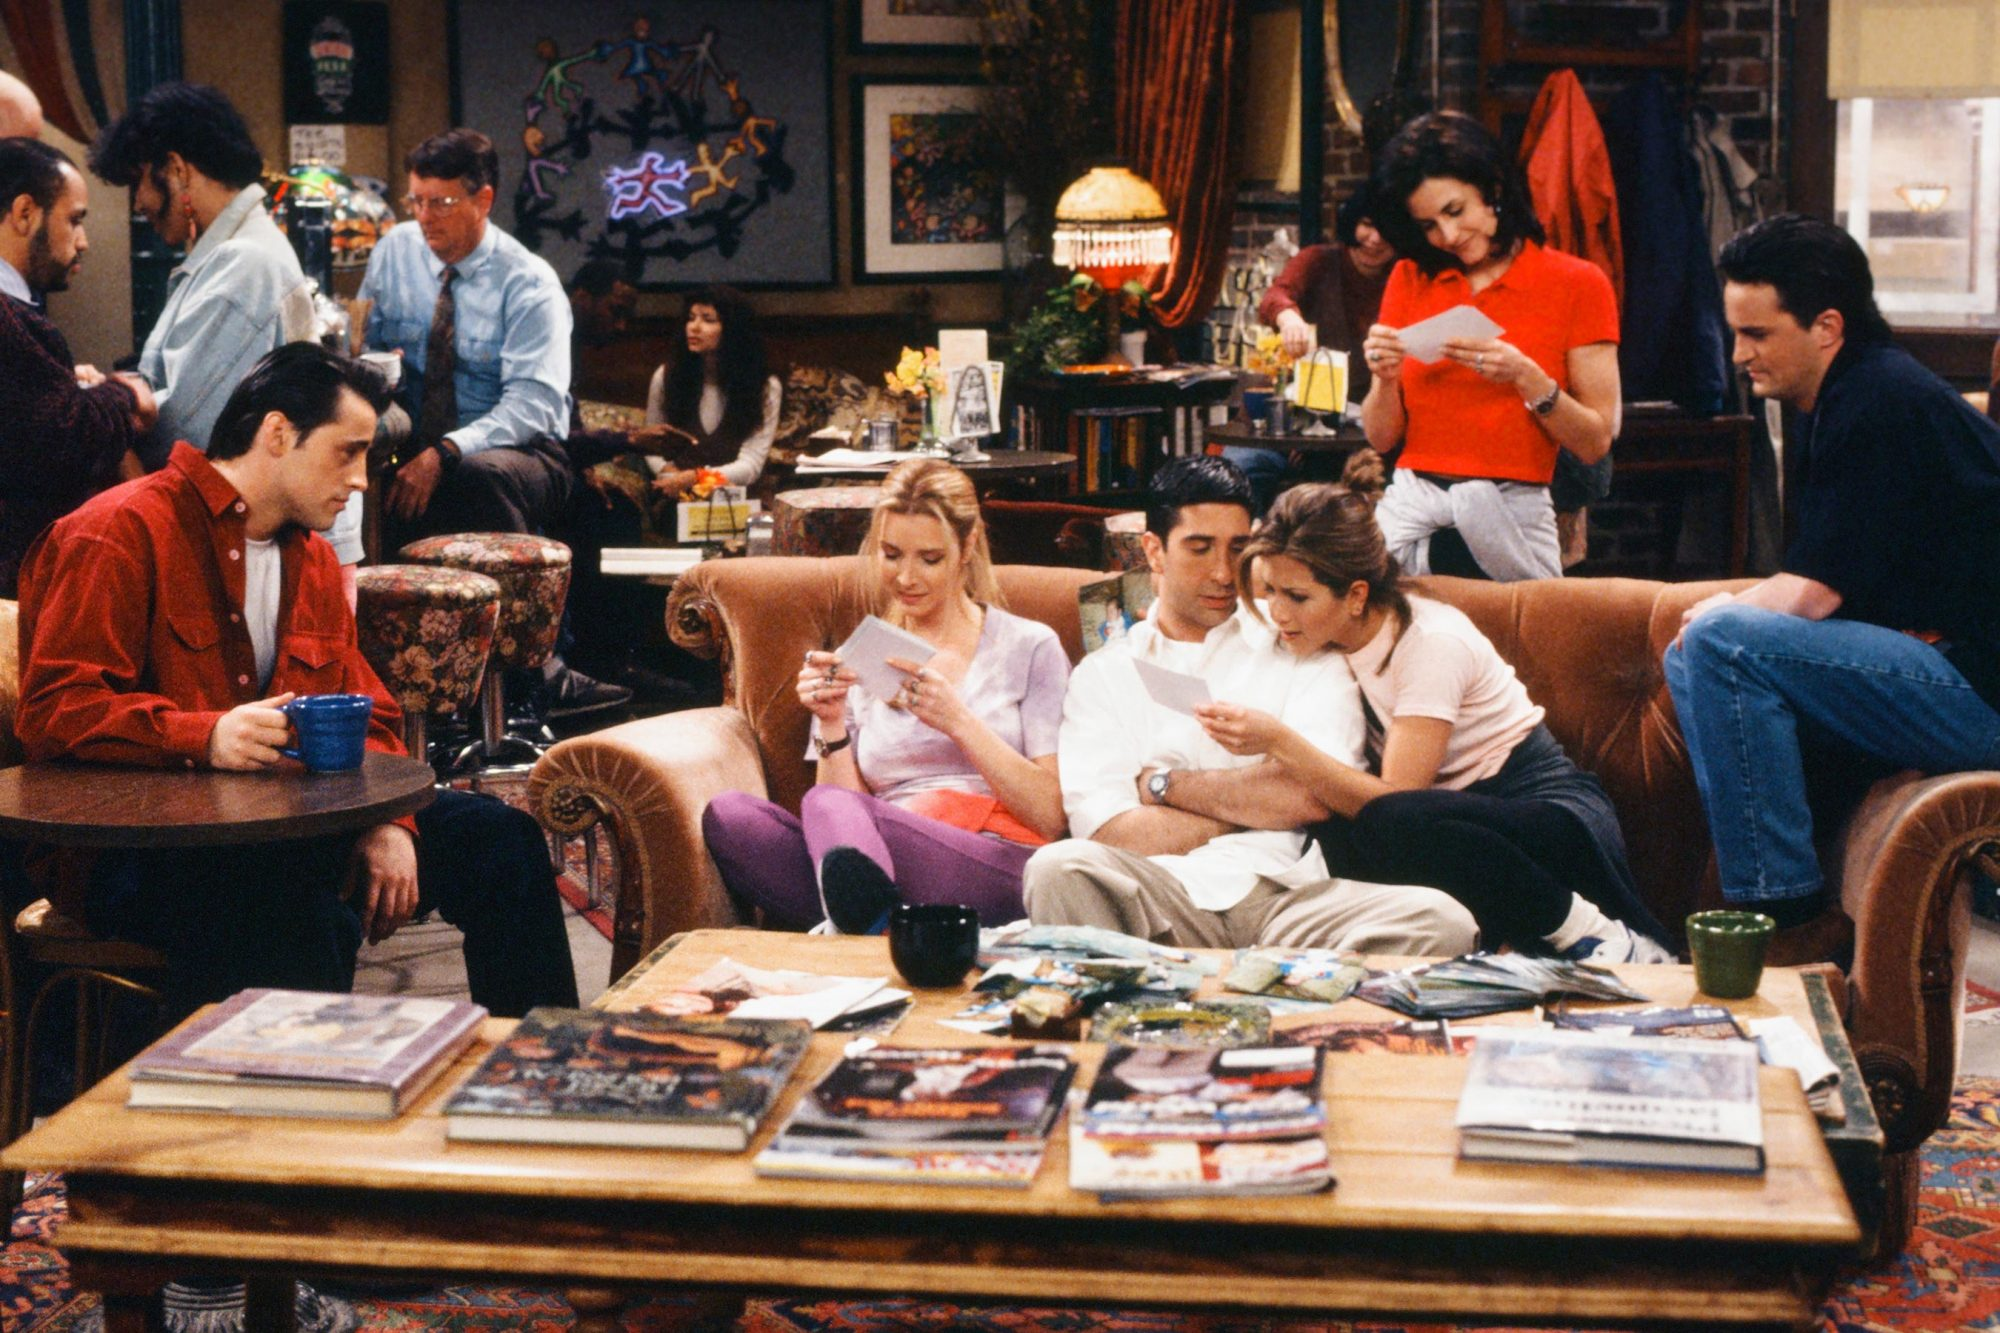 You can now buy Central Perk coffee in honor of Friends 25th anniversary gettyimages-183118177